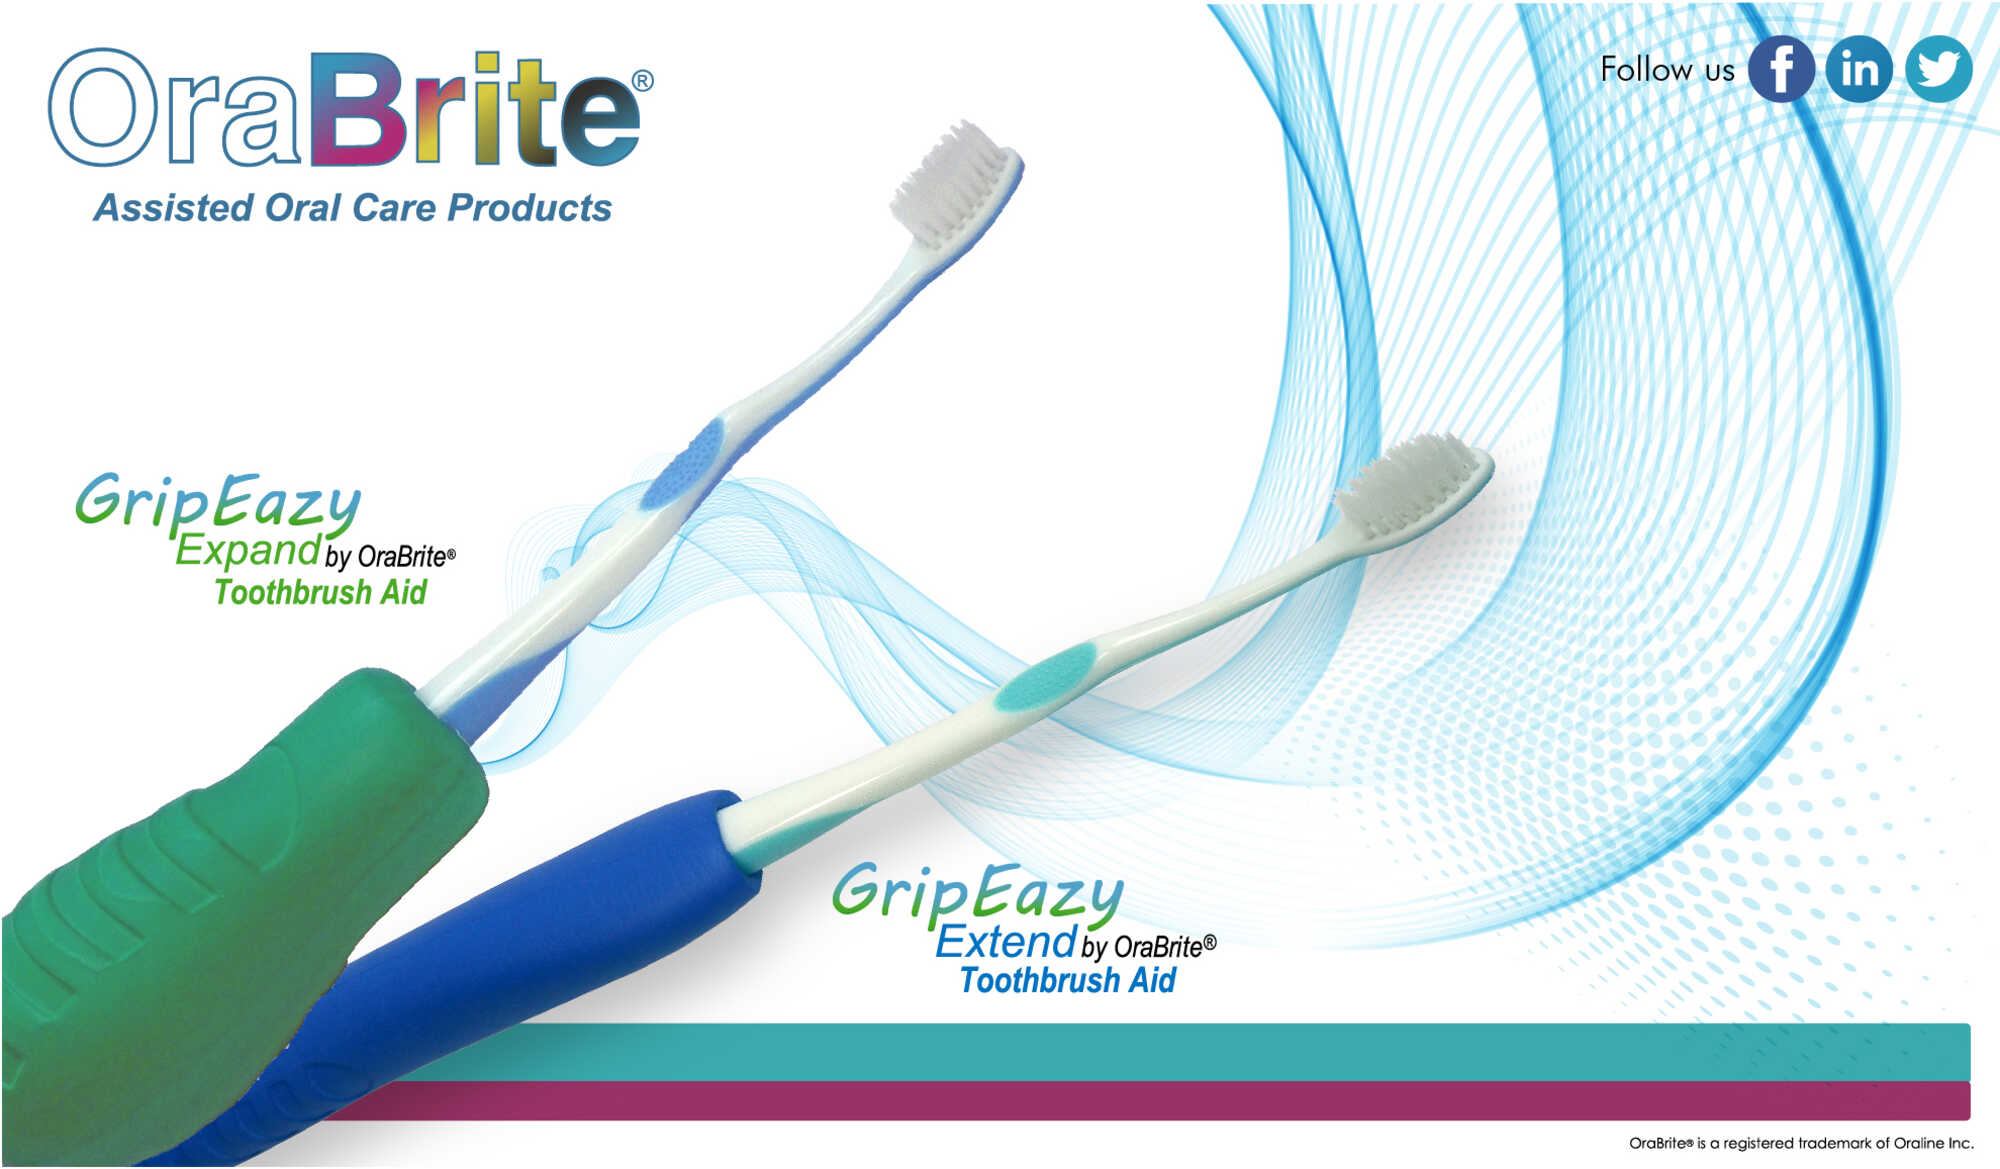 GripEazy Toothbrush Aids by OraBrite